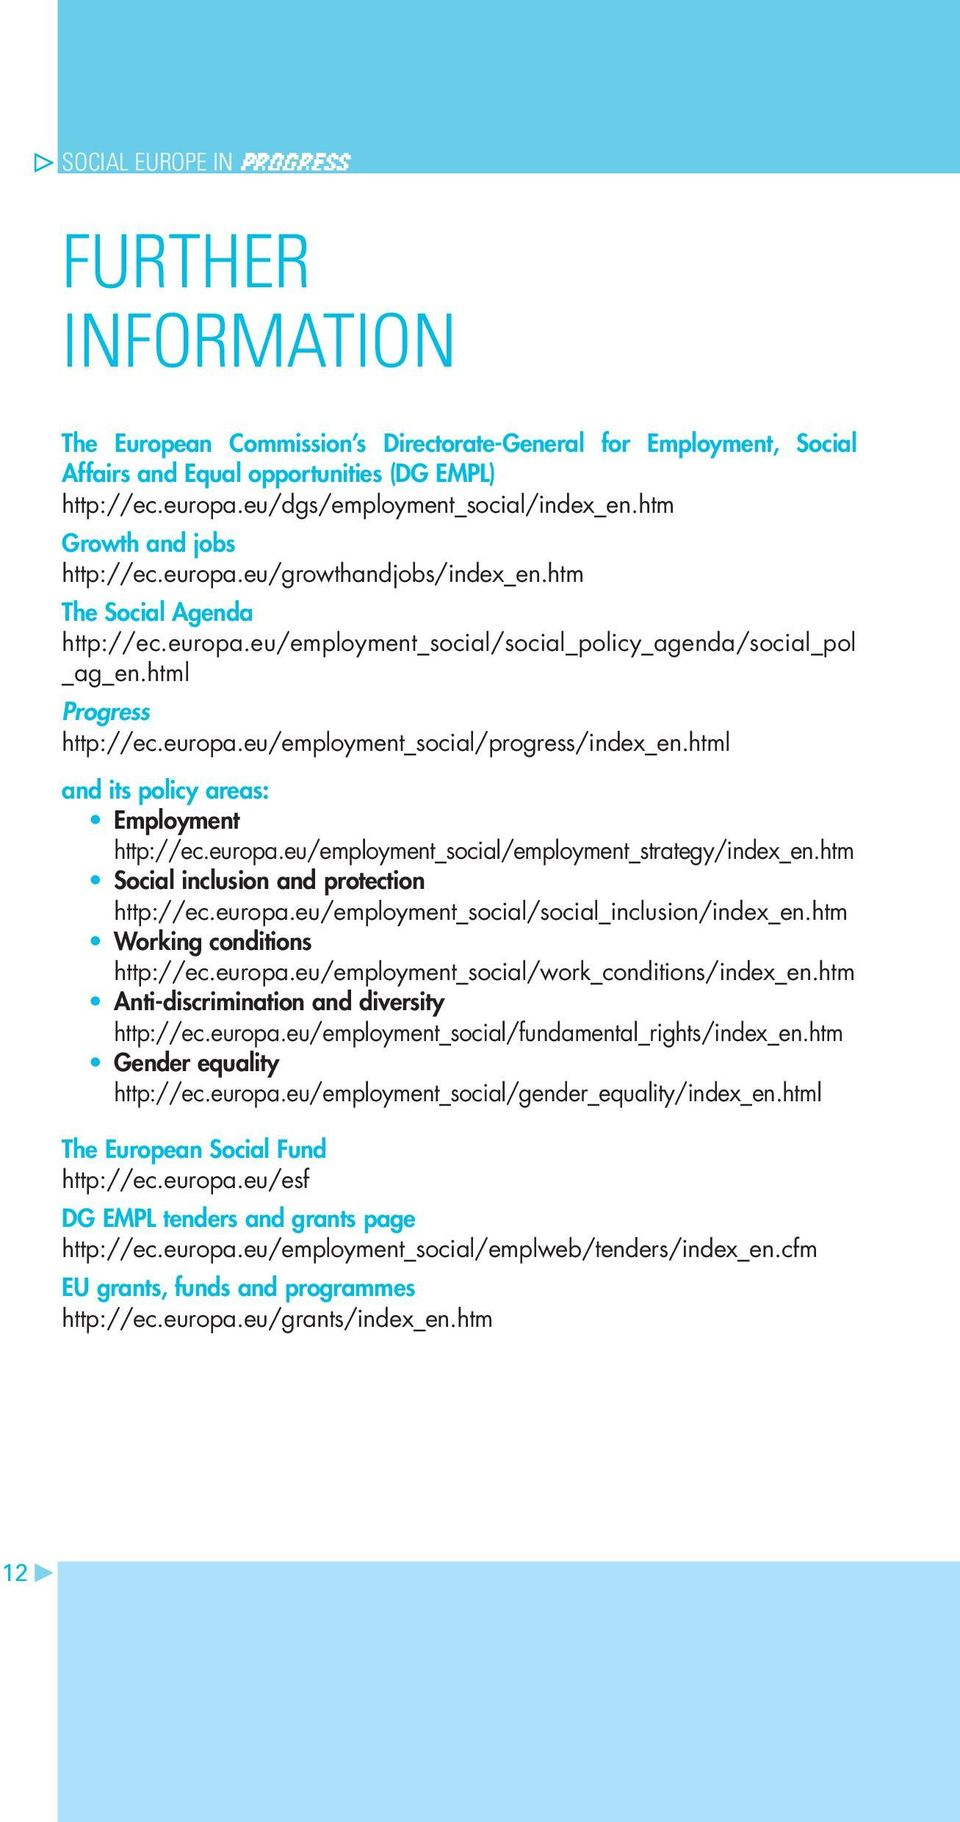 html and its policy areas: Employment http://ec.europa.eu/employment_social/employment_strategy/index_en.htm Social inclusion and protection http://ec.europa.eu/employment_social/social_inclusion/index_en.